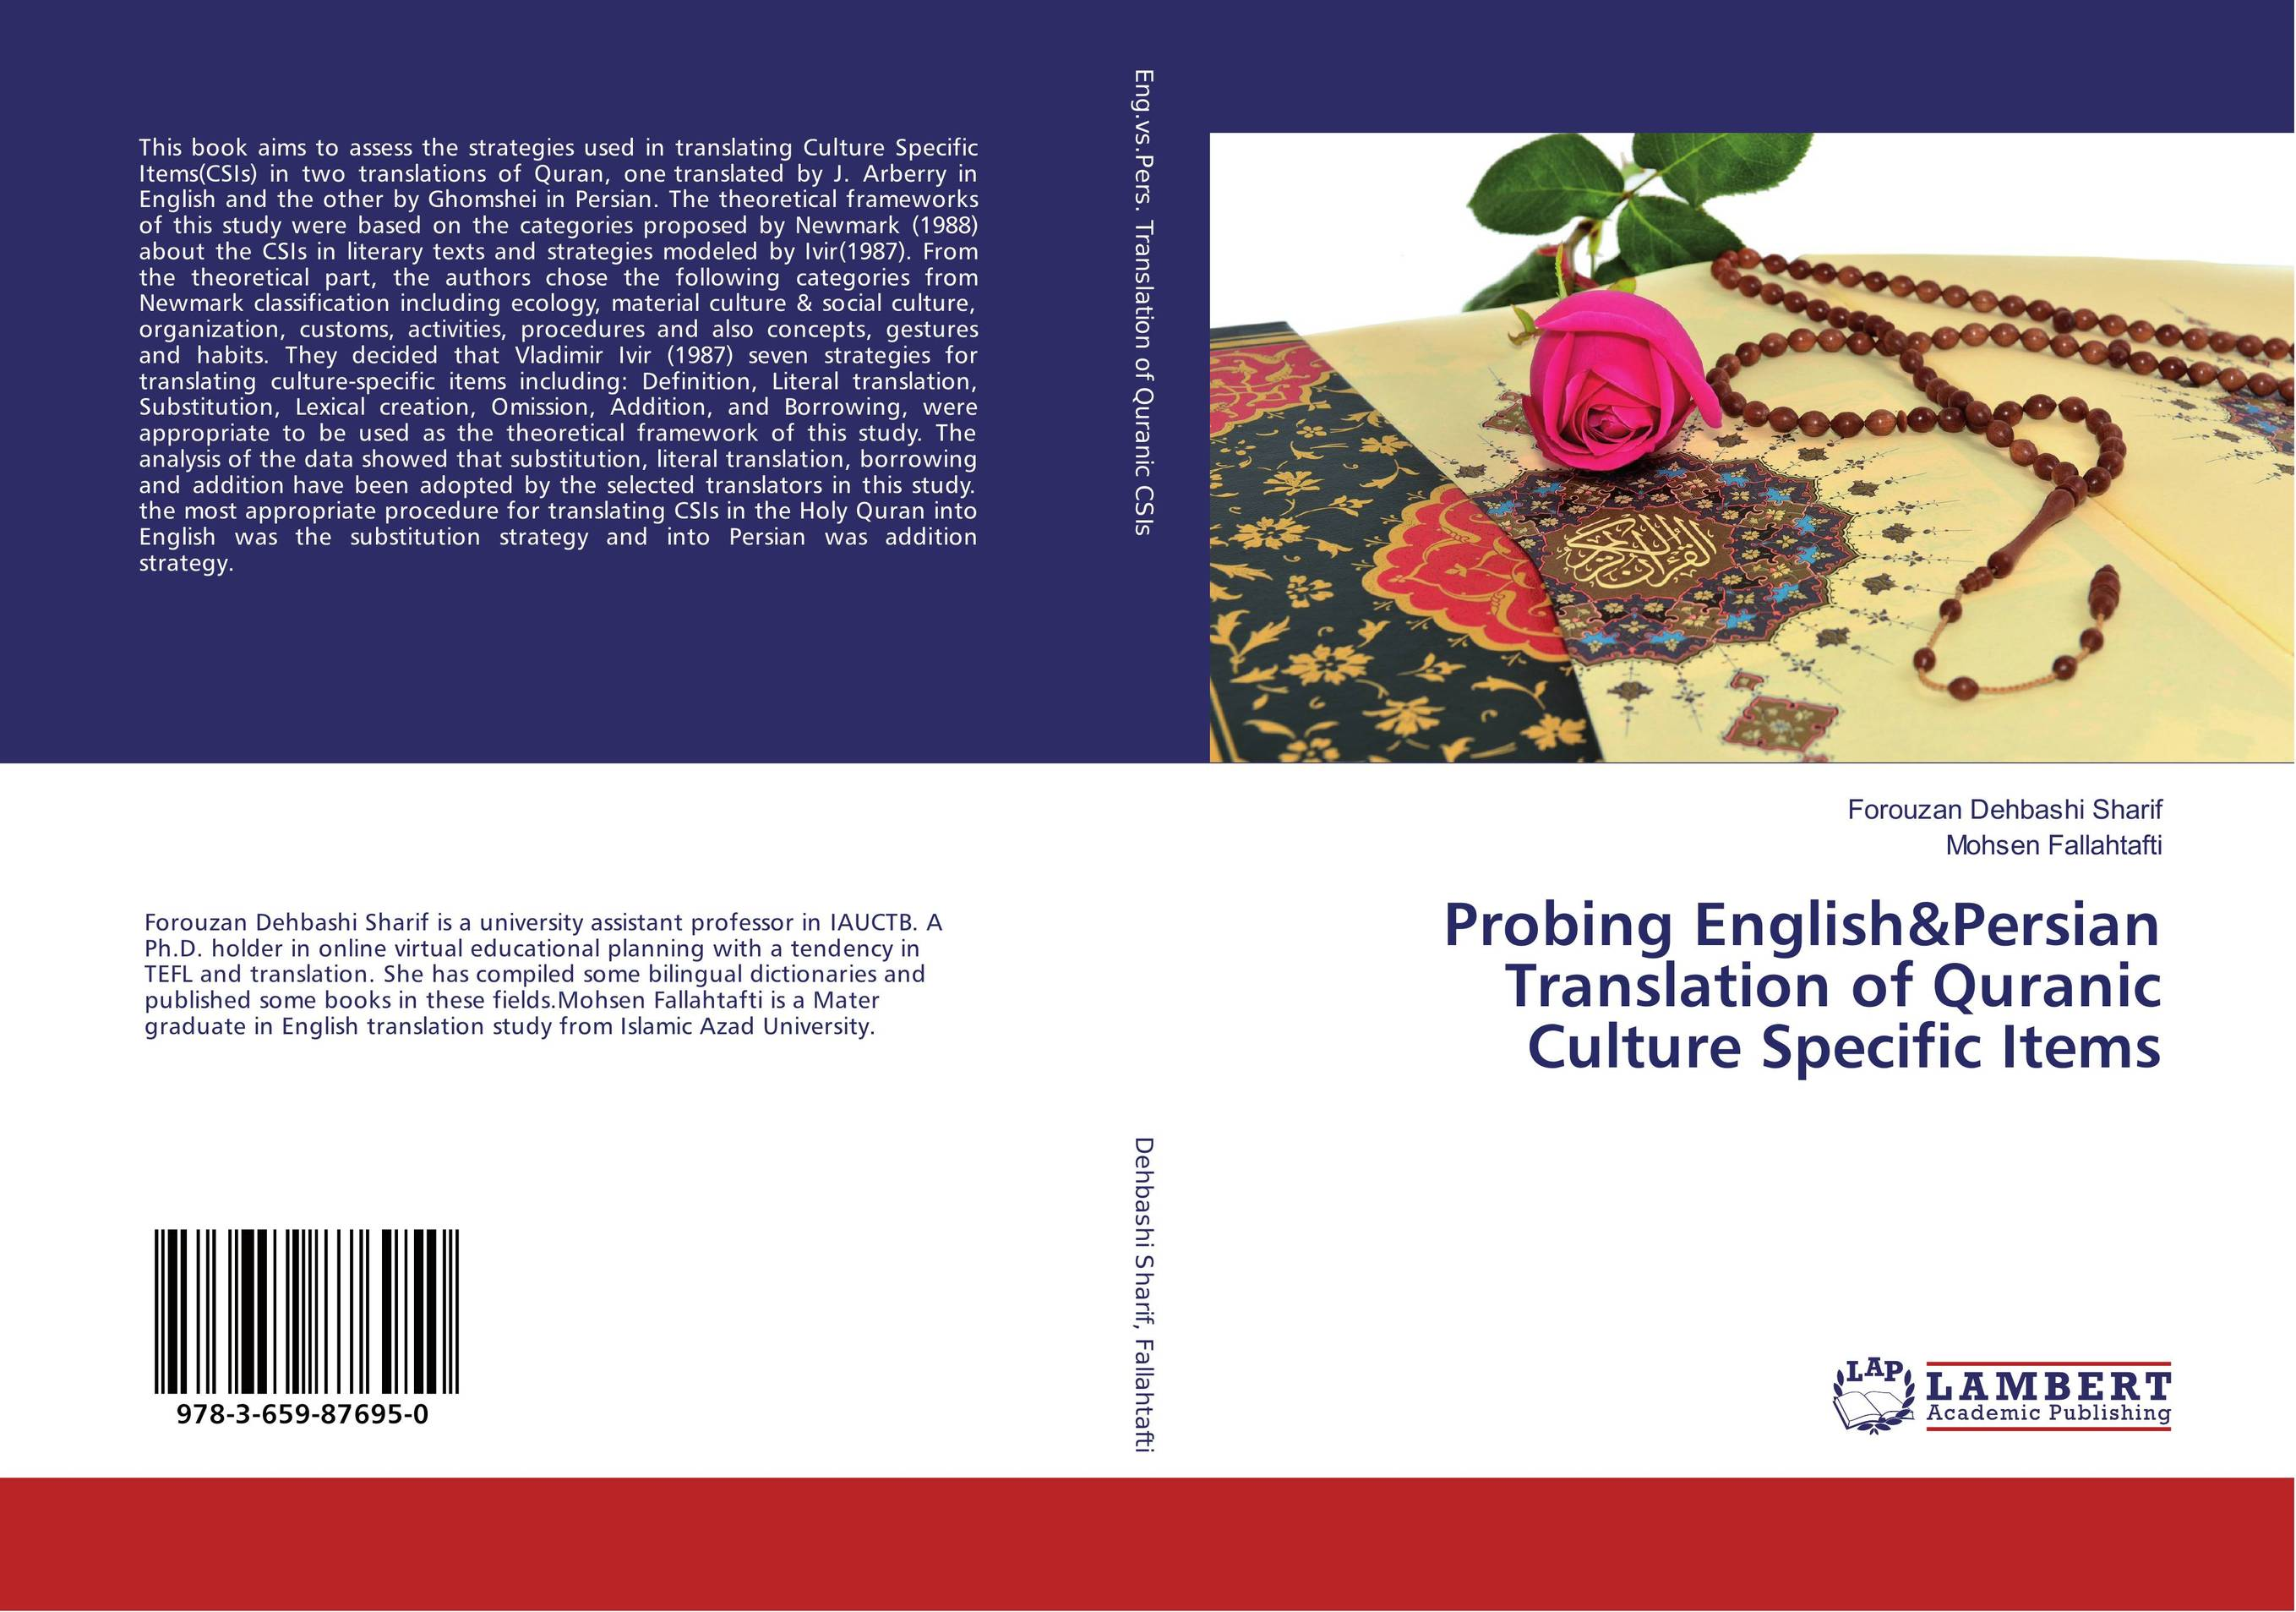 Probing English&Persian Translation of Quranic Culture Specific Items the handbook of translation and cognition